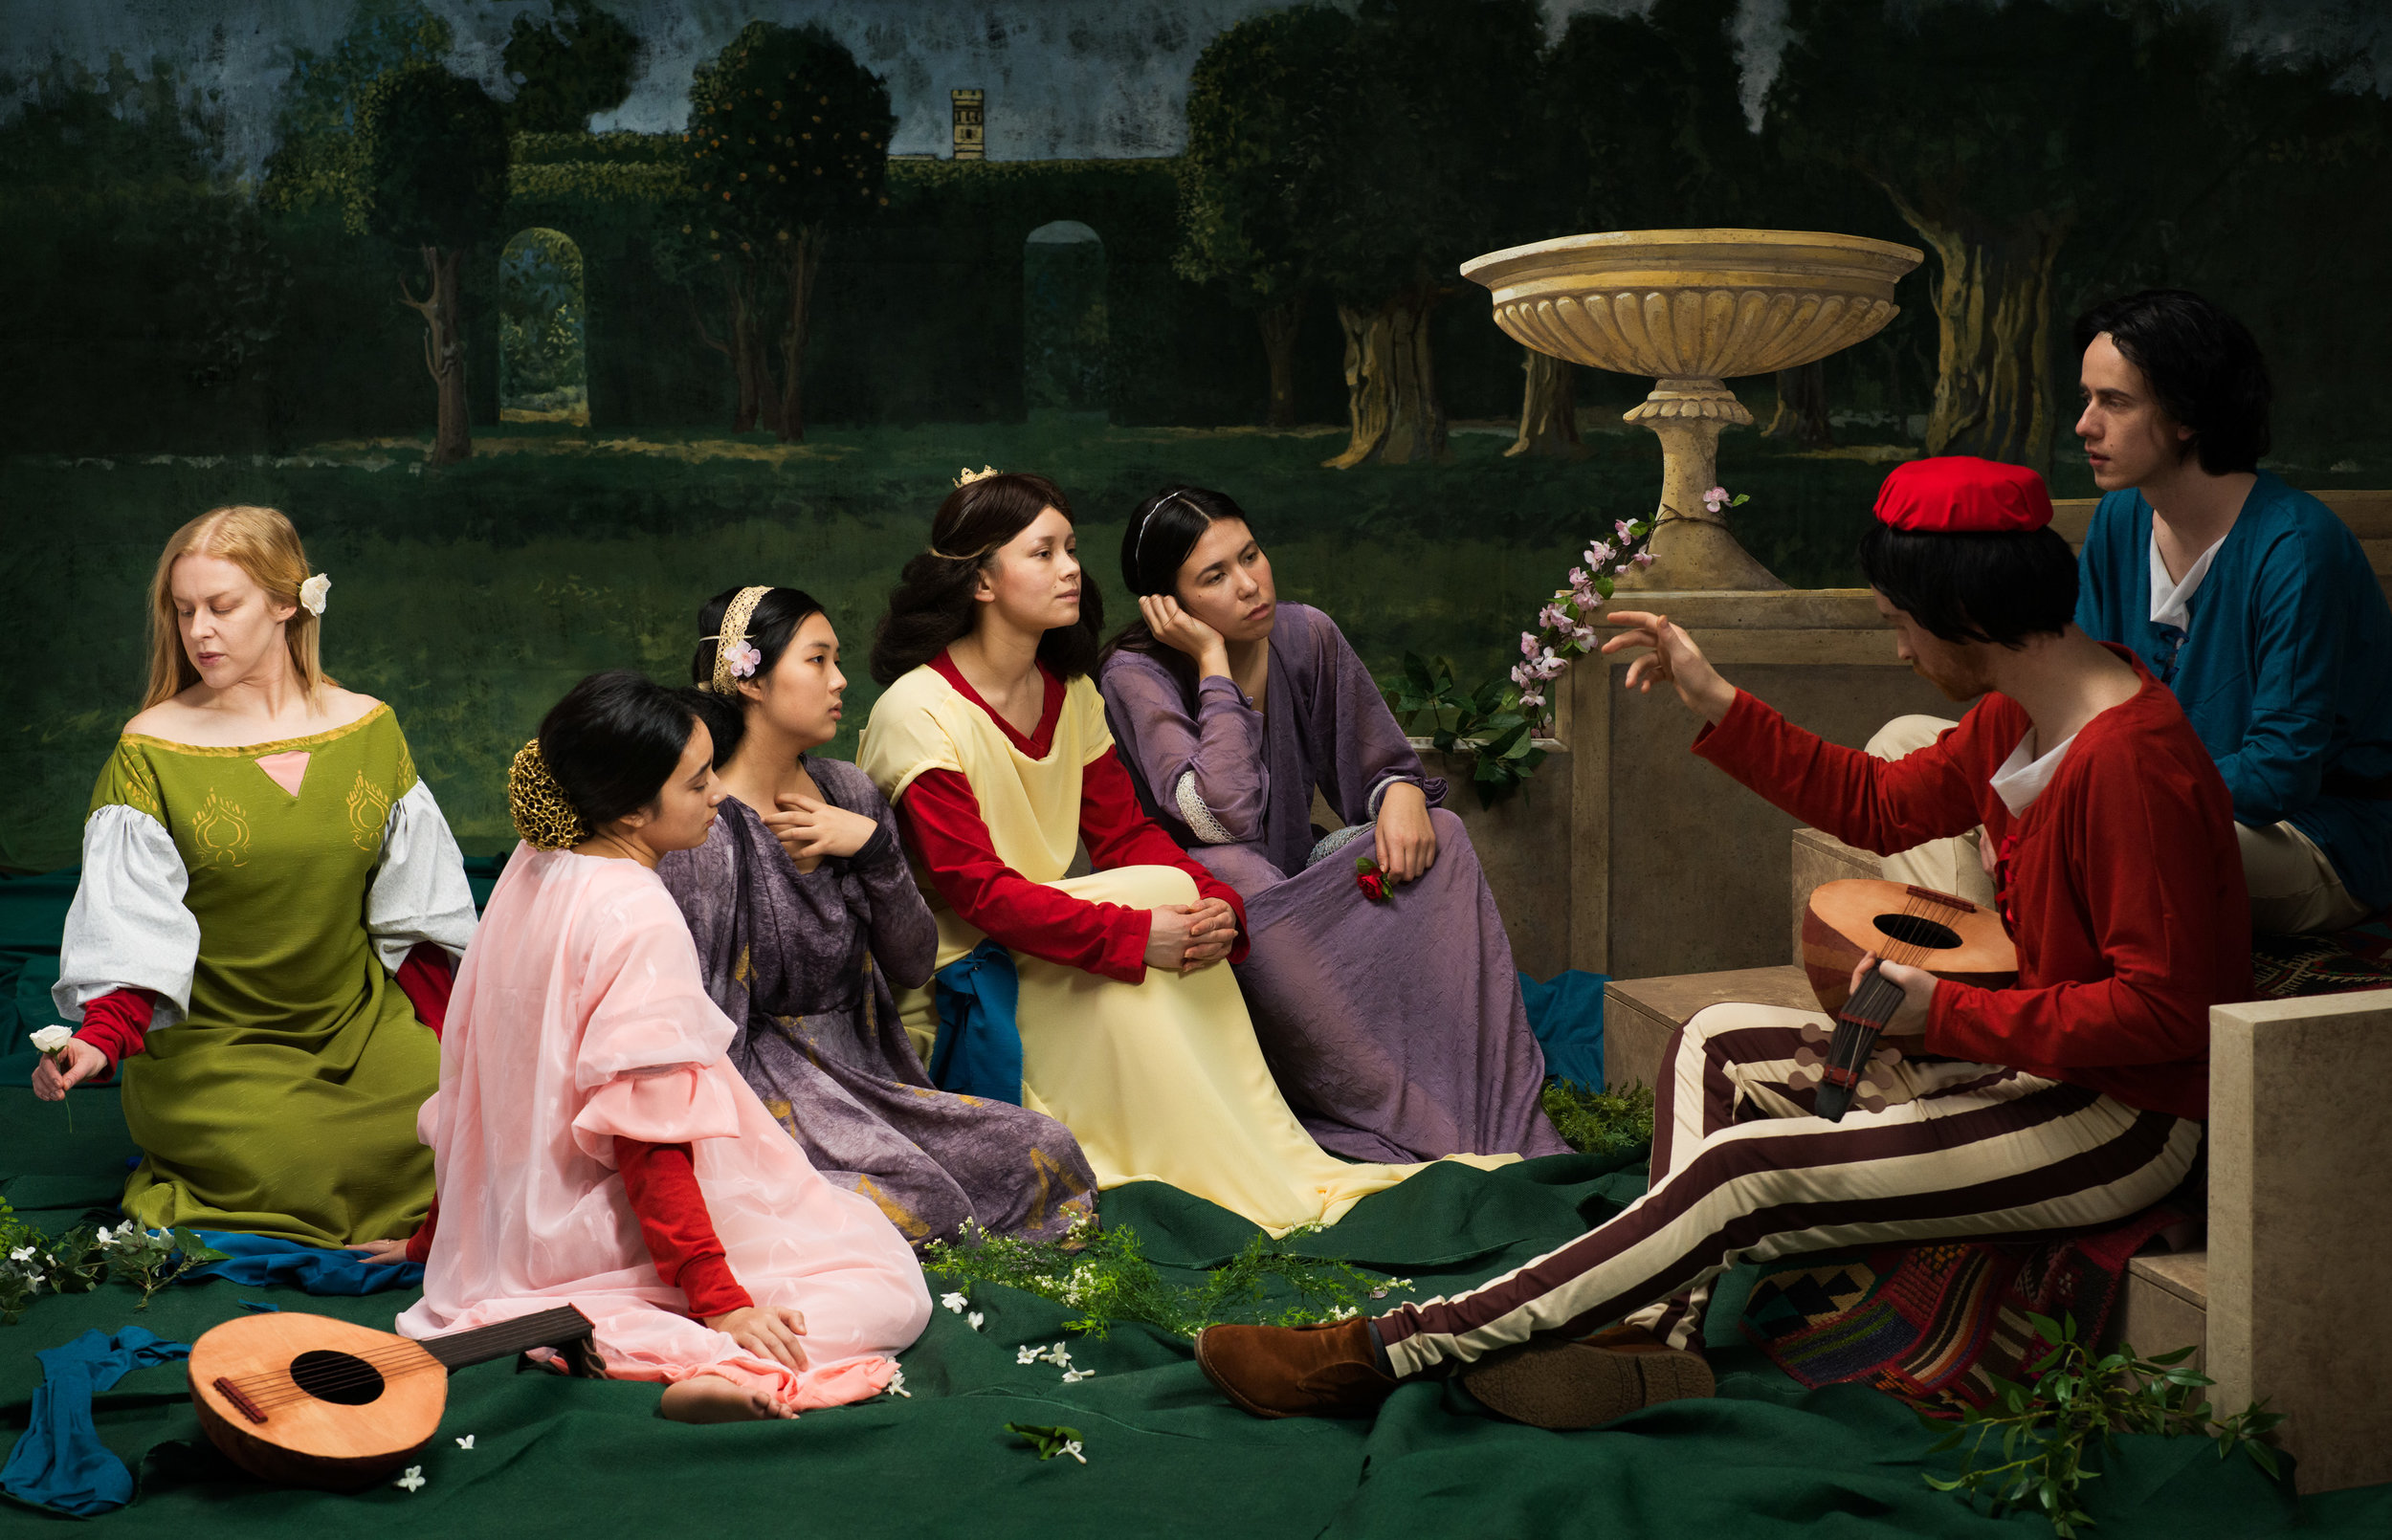 """The Decameron Retold (after The Decameron, John William Waterhouse)  2019, archival pigment print SMALL 24"""" x 37.25"""", MEDIUM 36"""" x 56"""", LARGE 48"""" x 74.5"""" All sizes combined edition of 5"""